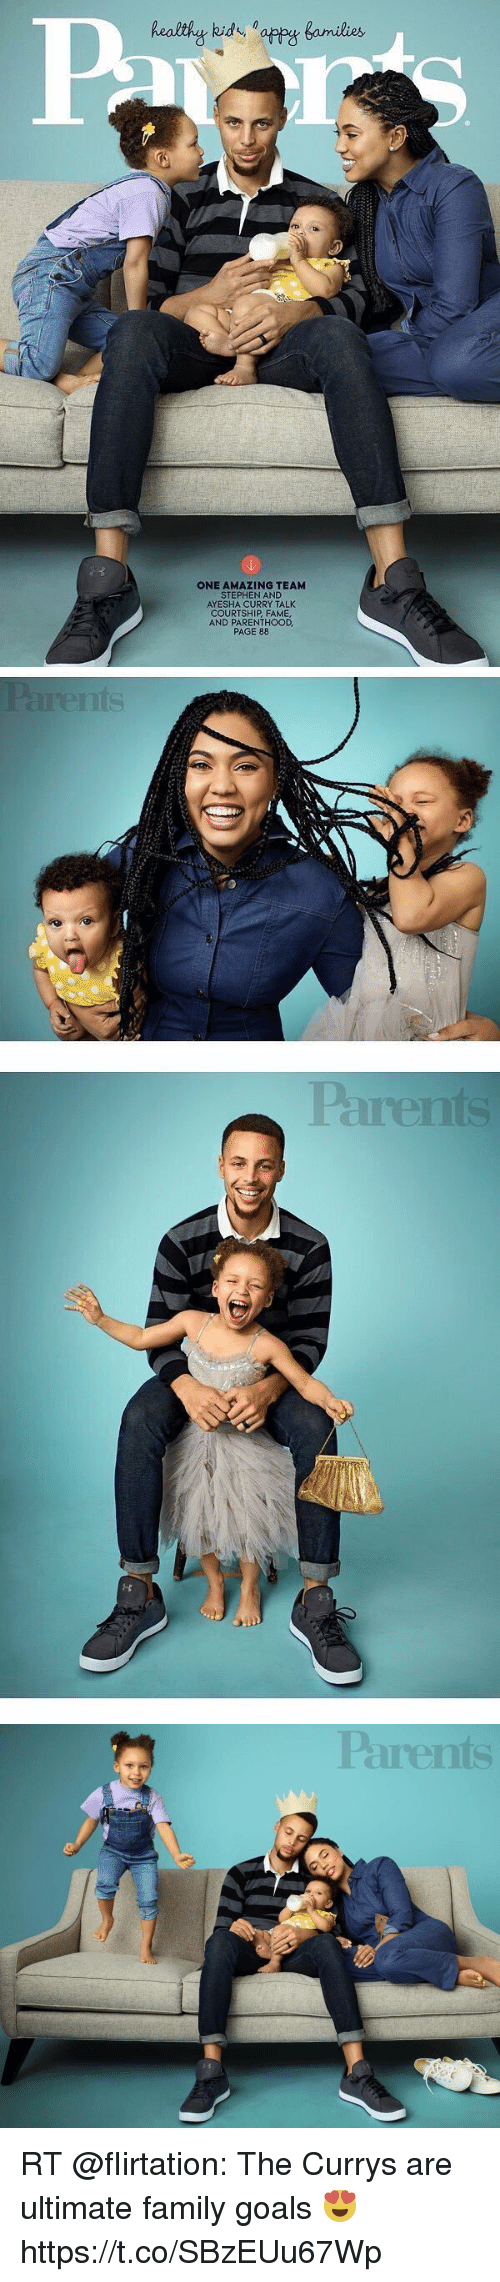 ONE AMAZING TEAM STEPHEN AND AYESHA CURRY TALK COURTSHIP FAME AND ...